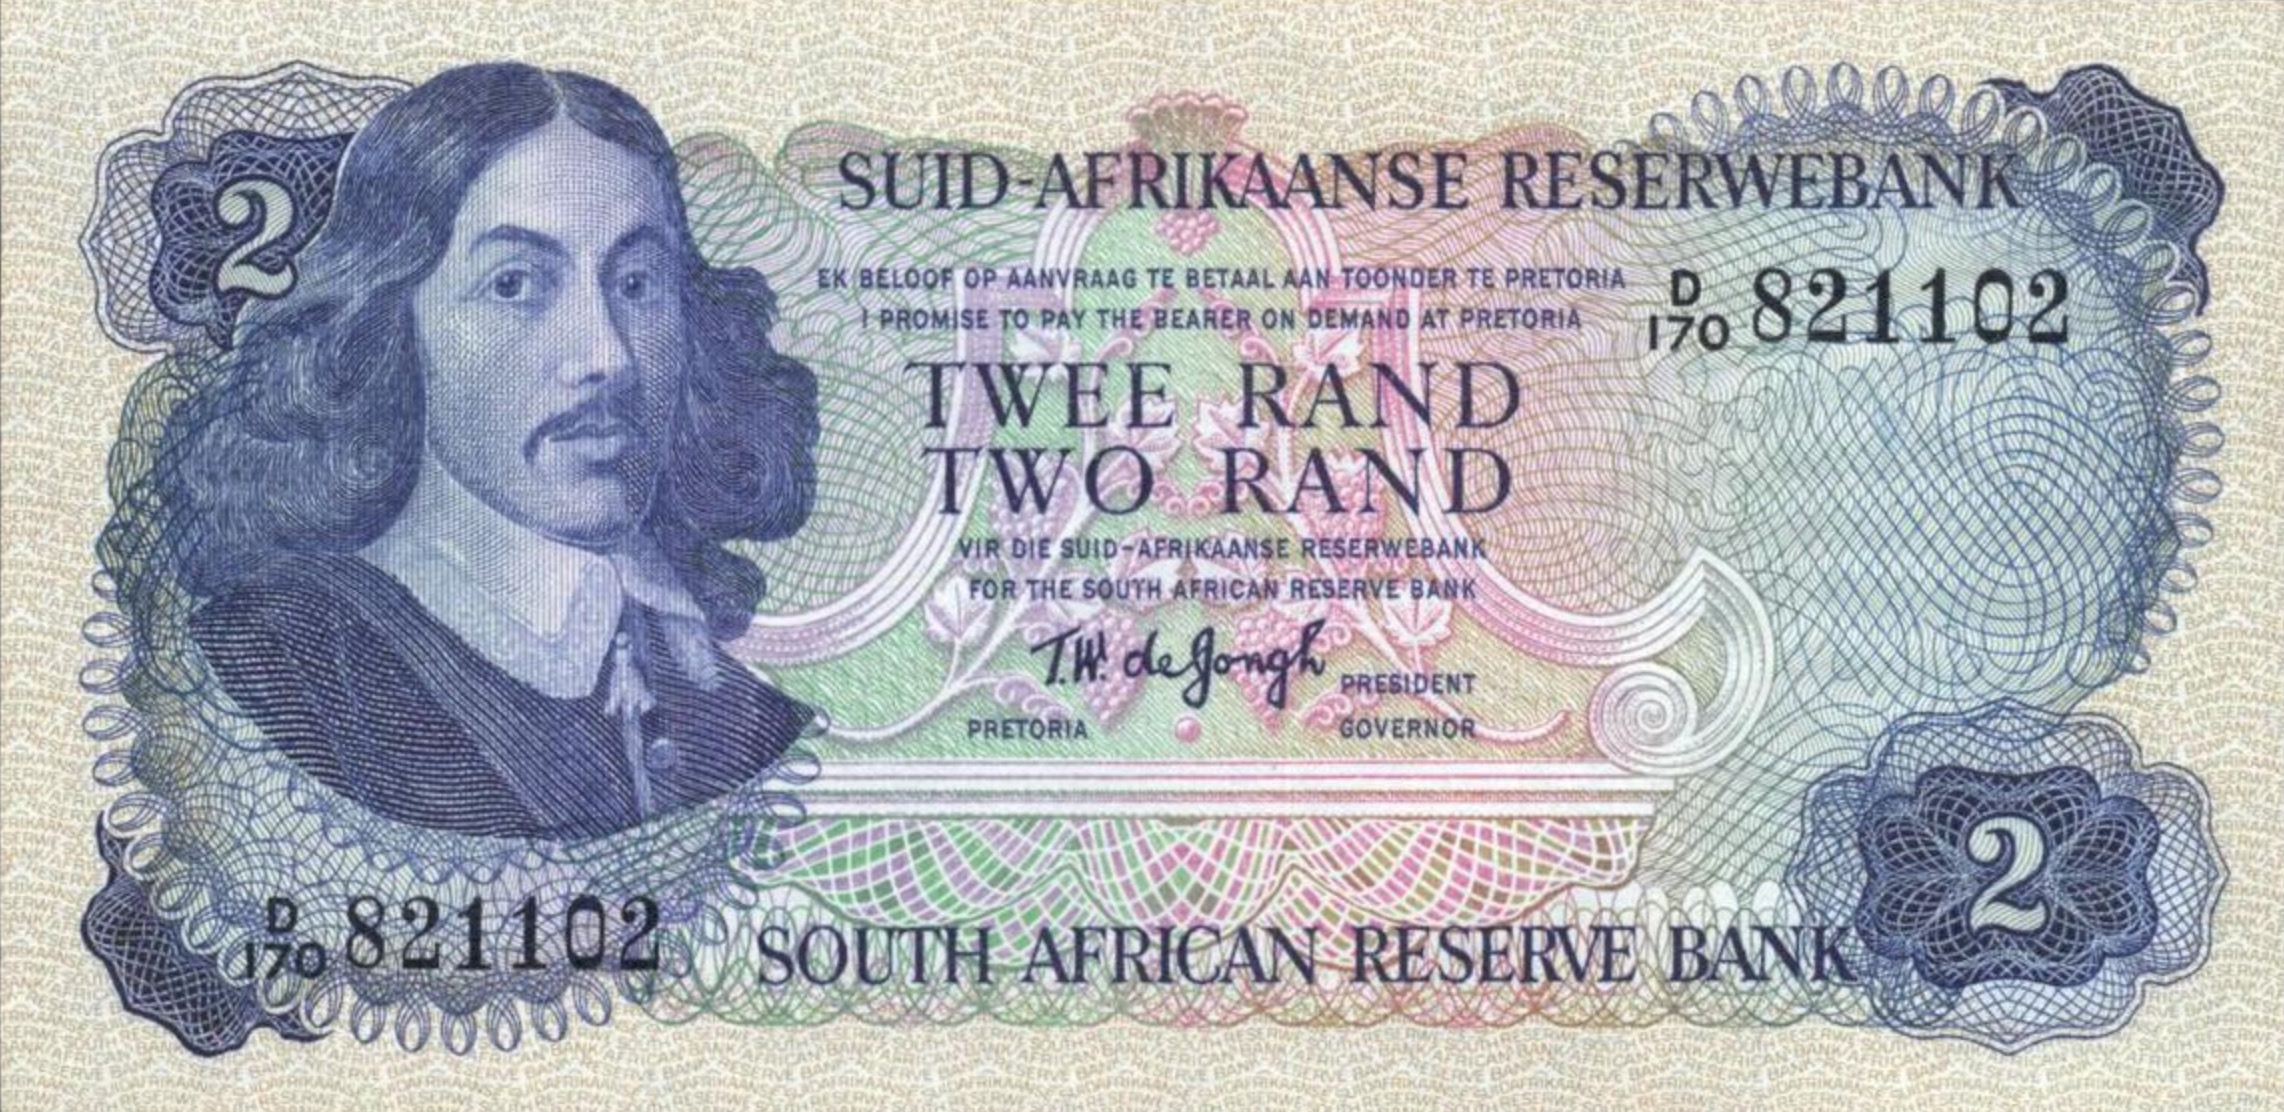 2 South African Rand banknote (van Riebeeck 1974 issue)